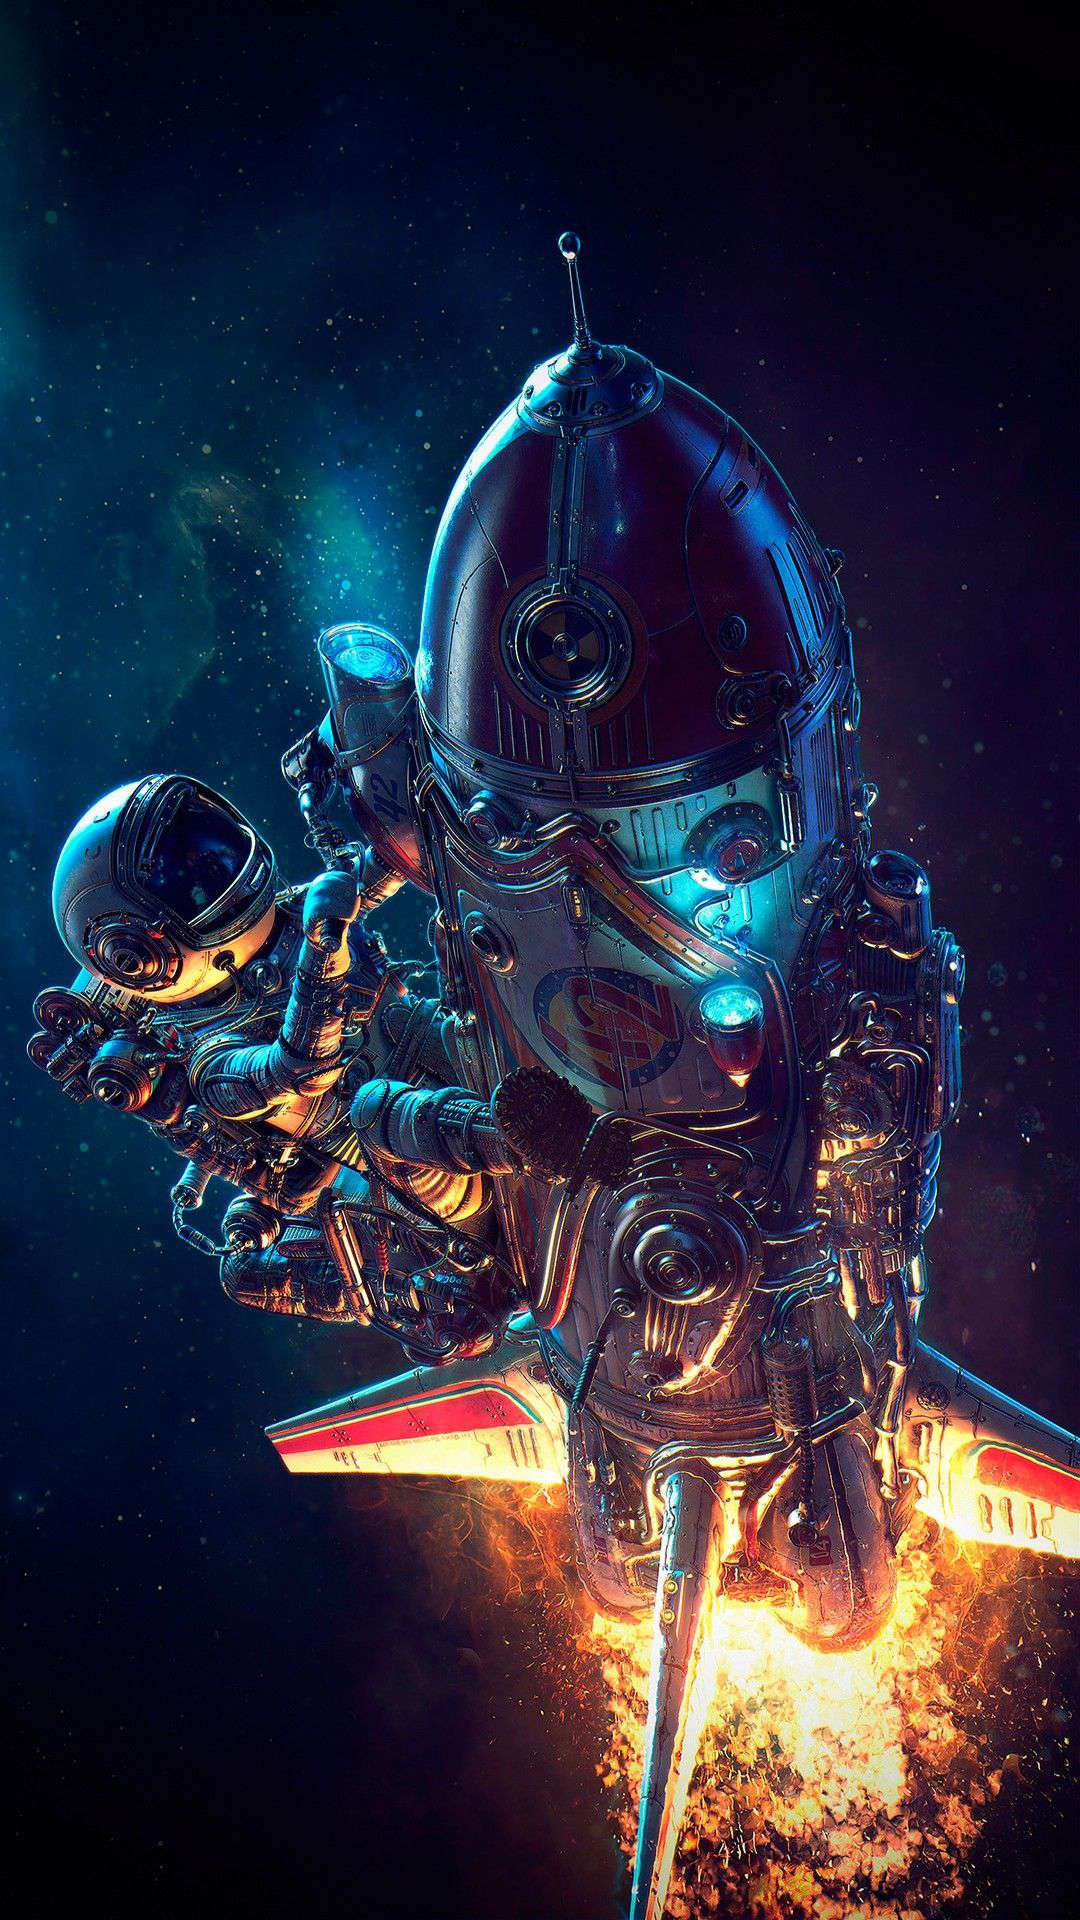 Digital Cars Wallpapers Space Astronaut On Rocket Ship Iphone Wallpaper Iphone